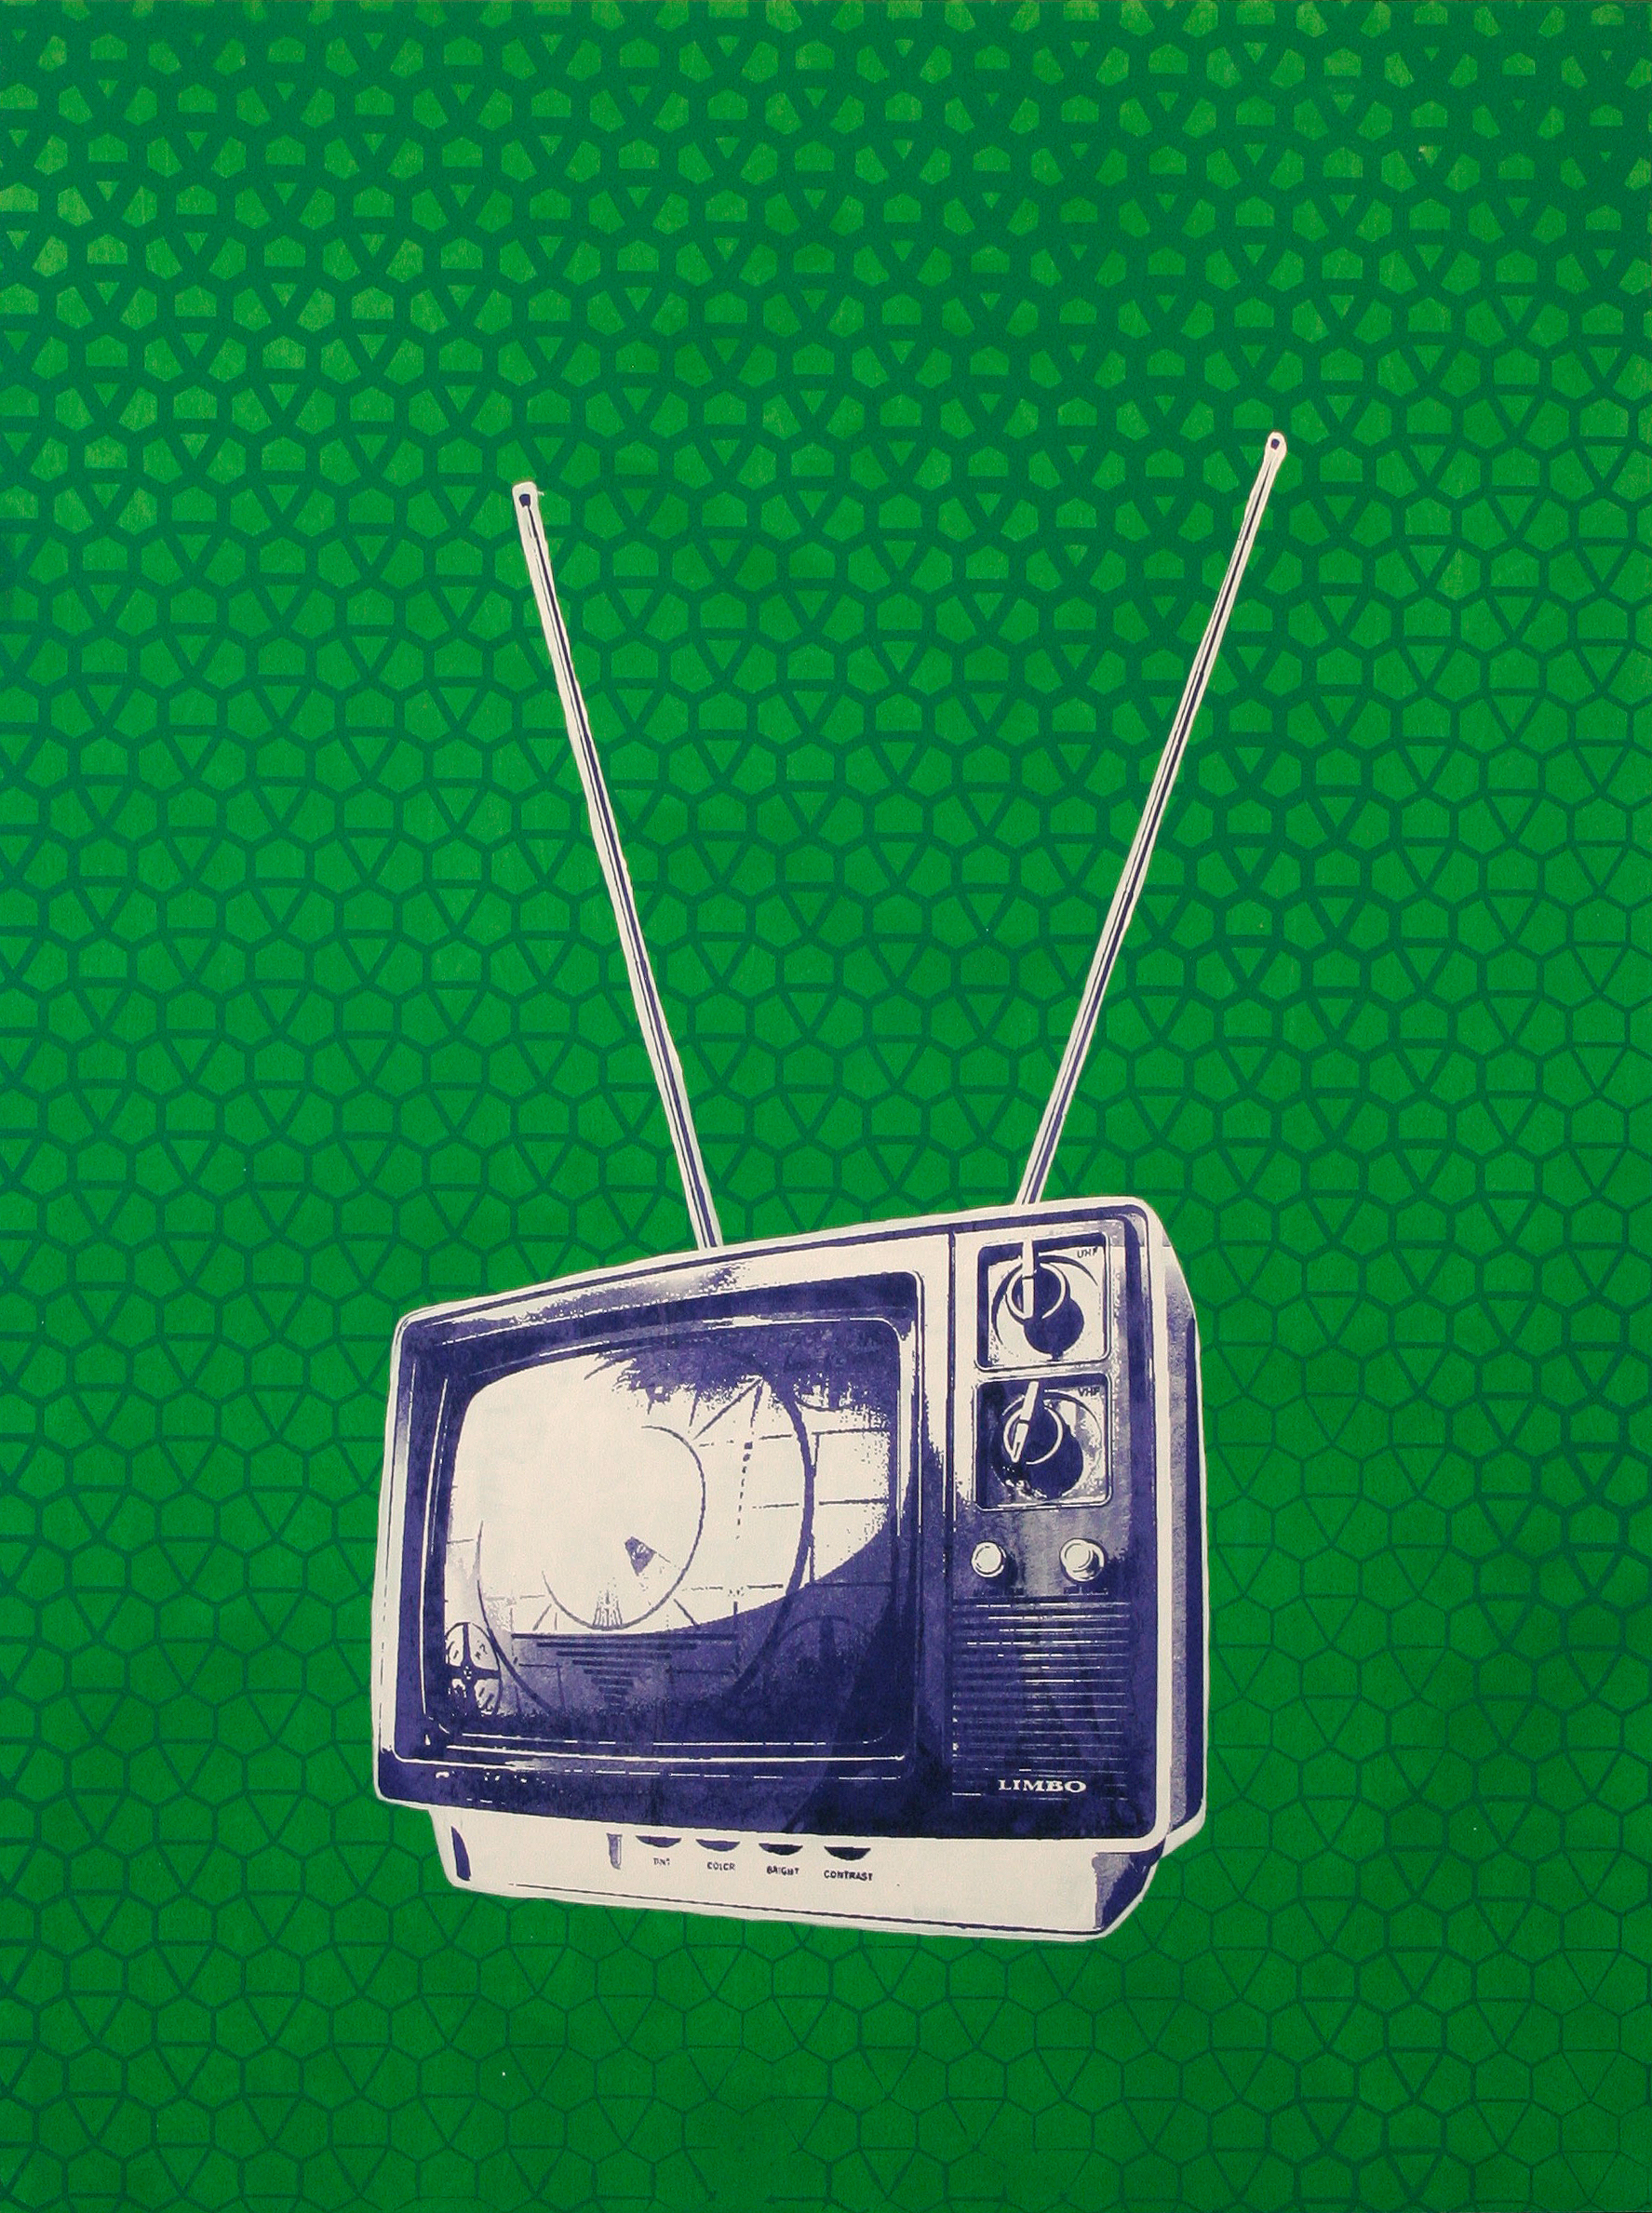 Tv on green